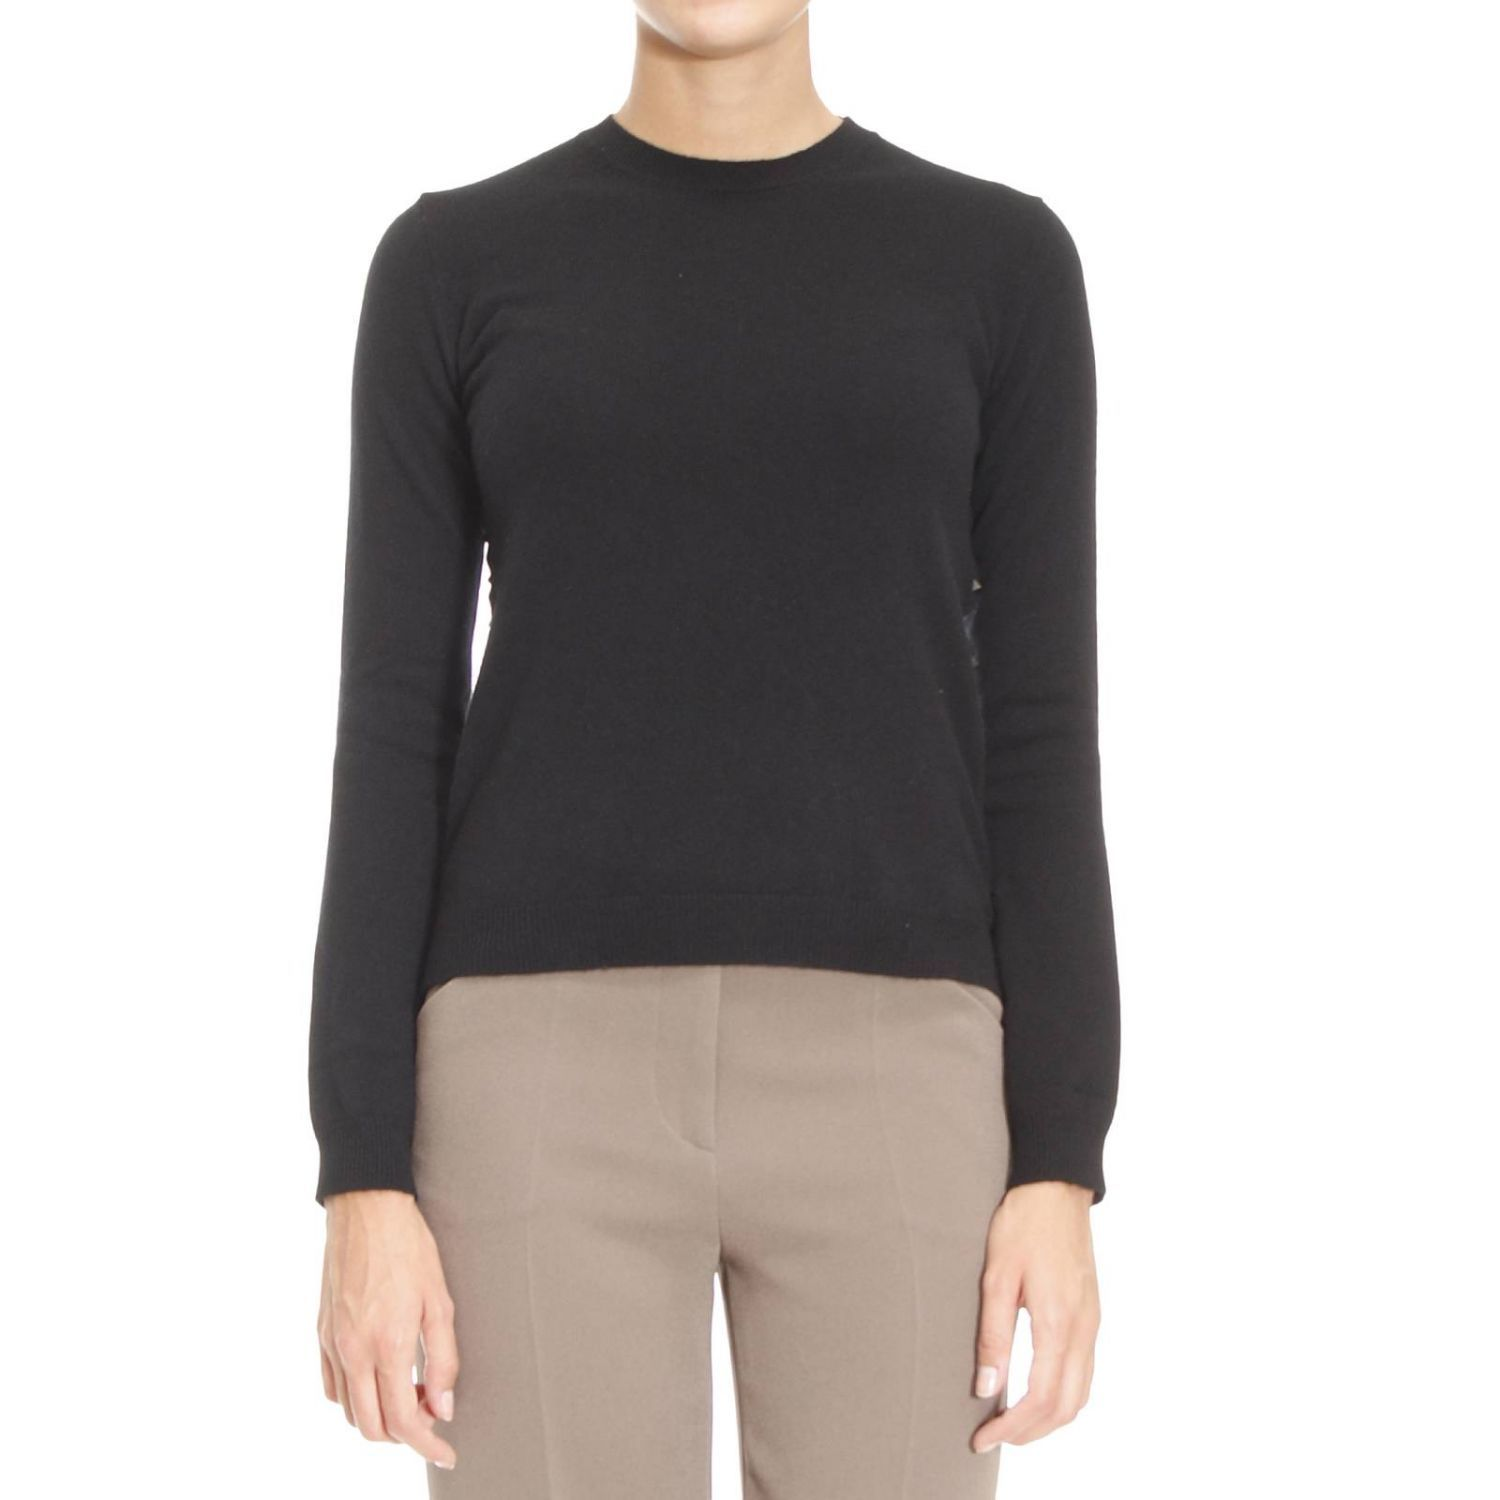 Sweater Sweater Woman Valentino